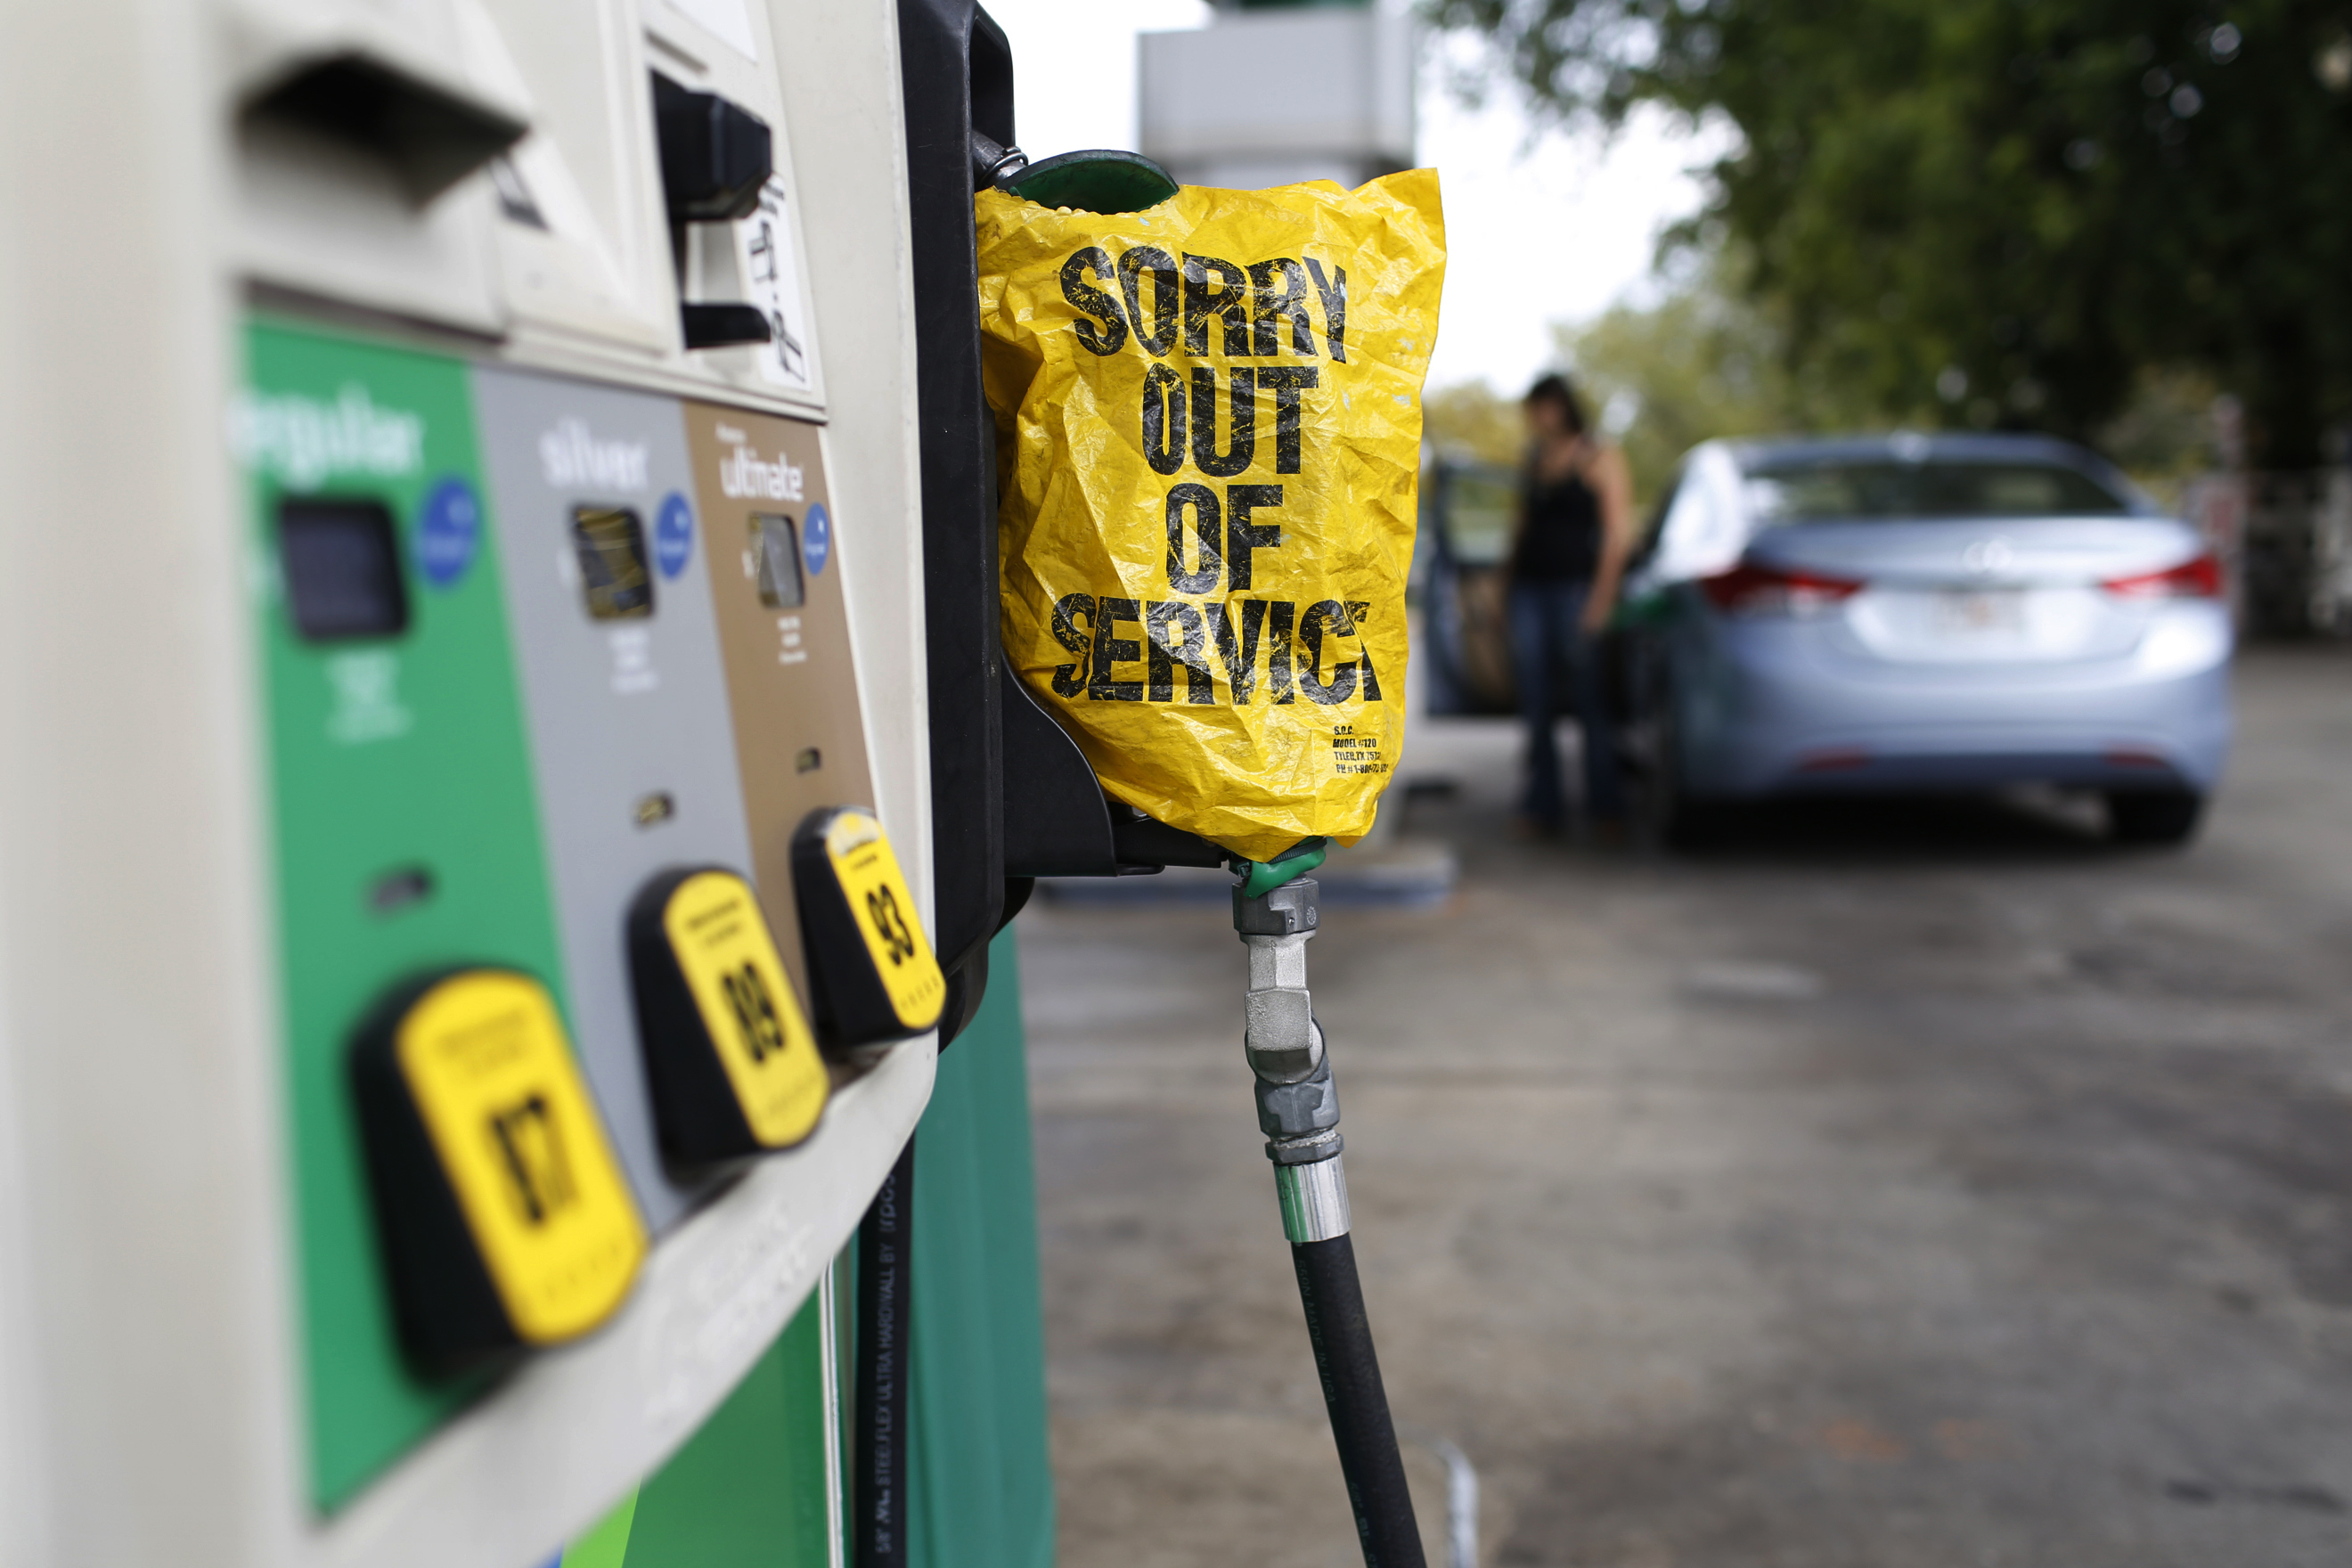 """Harvey-Gasoline Prices-1 A """"Sorry out of Service"""" sign is placed on one of the gas pumps at a gas station in Athens, Ga., on Friday. Gasoline prices in the U.S. have risen to new high amid continuing fears of shortages in Texas and other states after Hurricane Harvey's strike."""